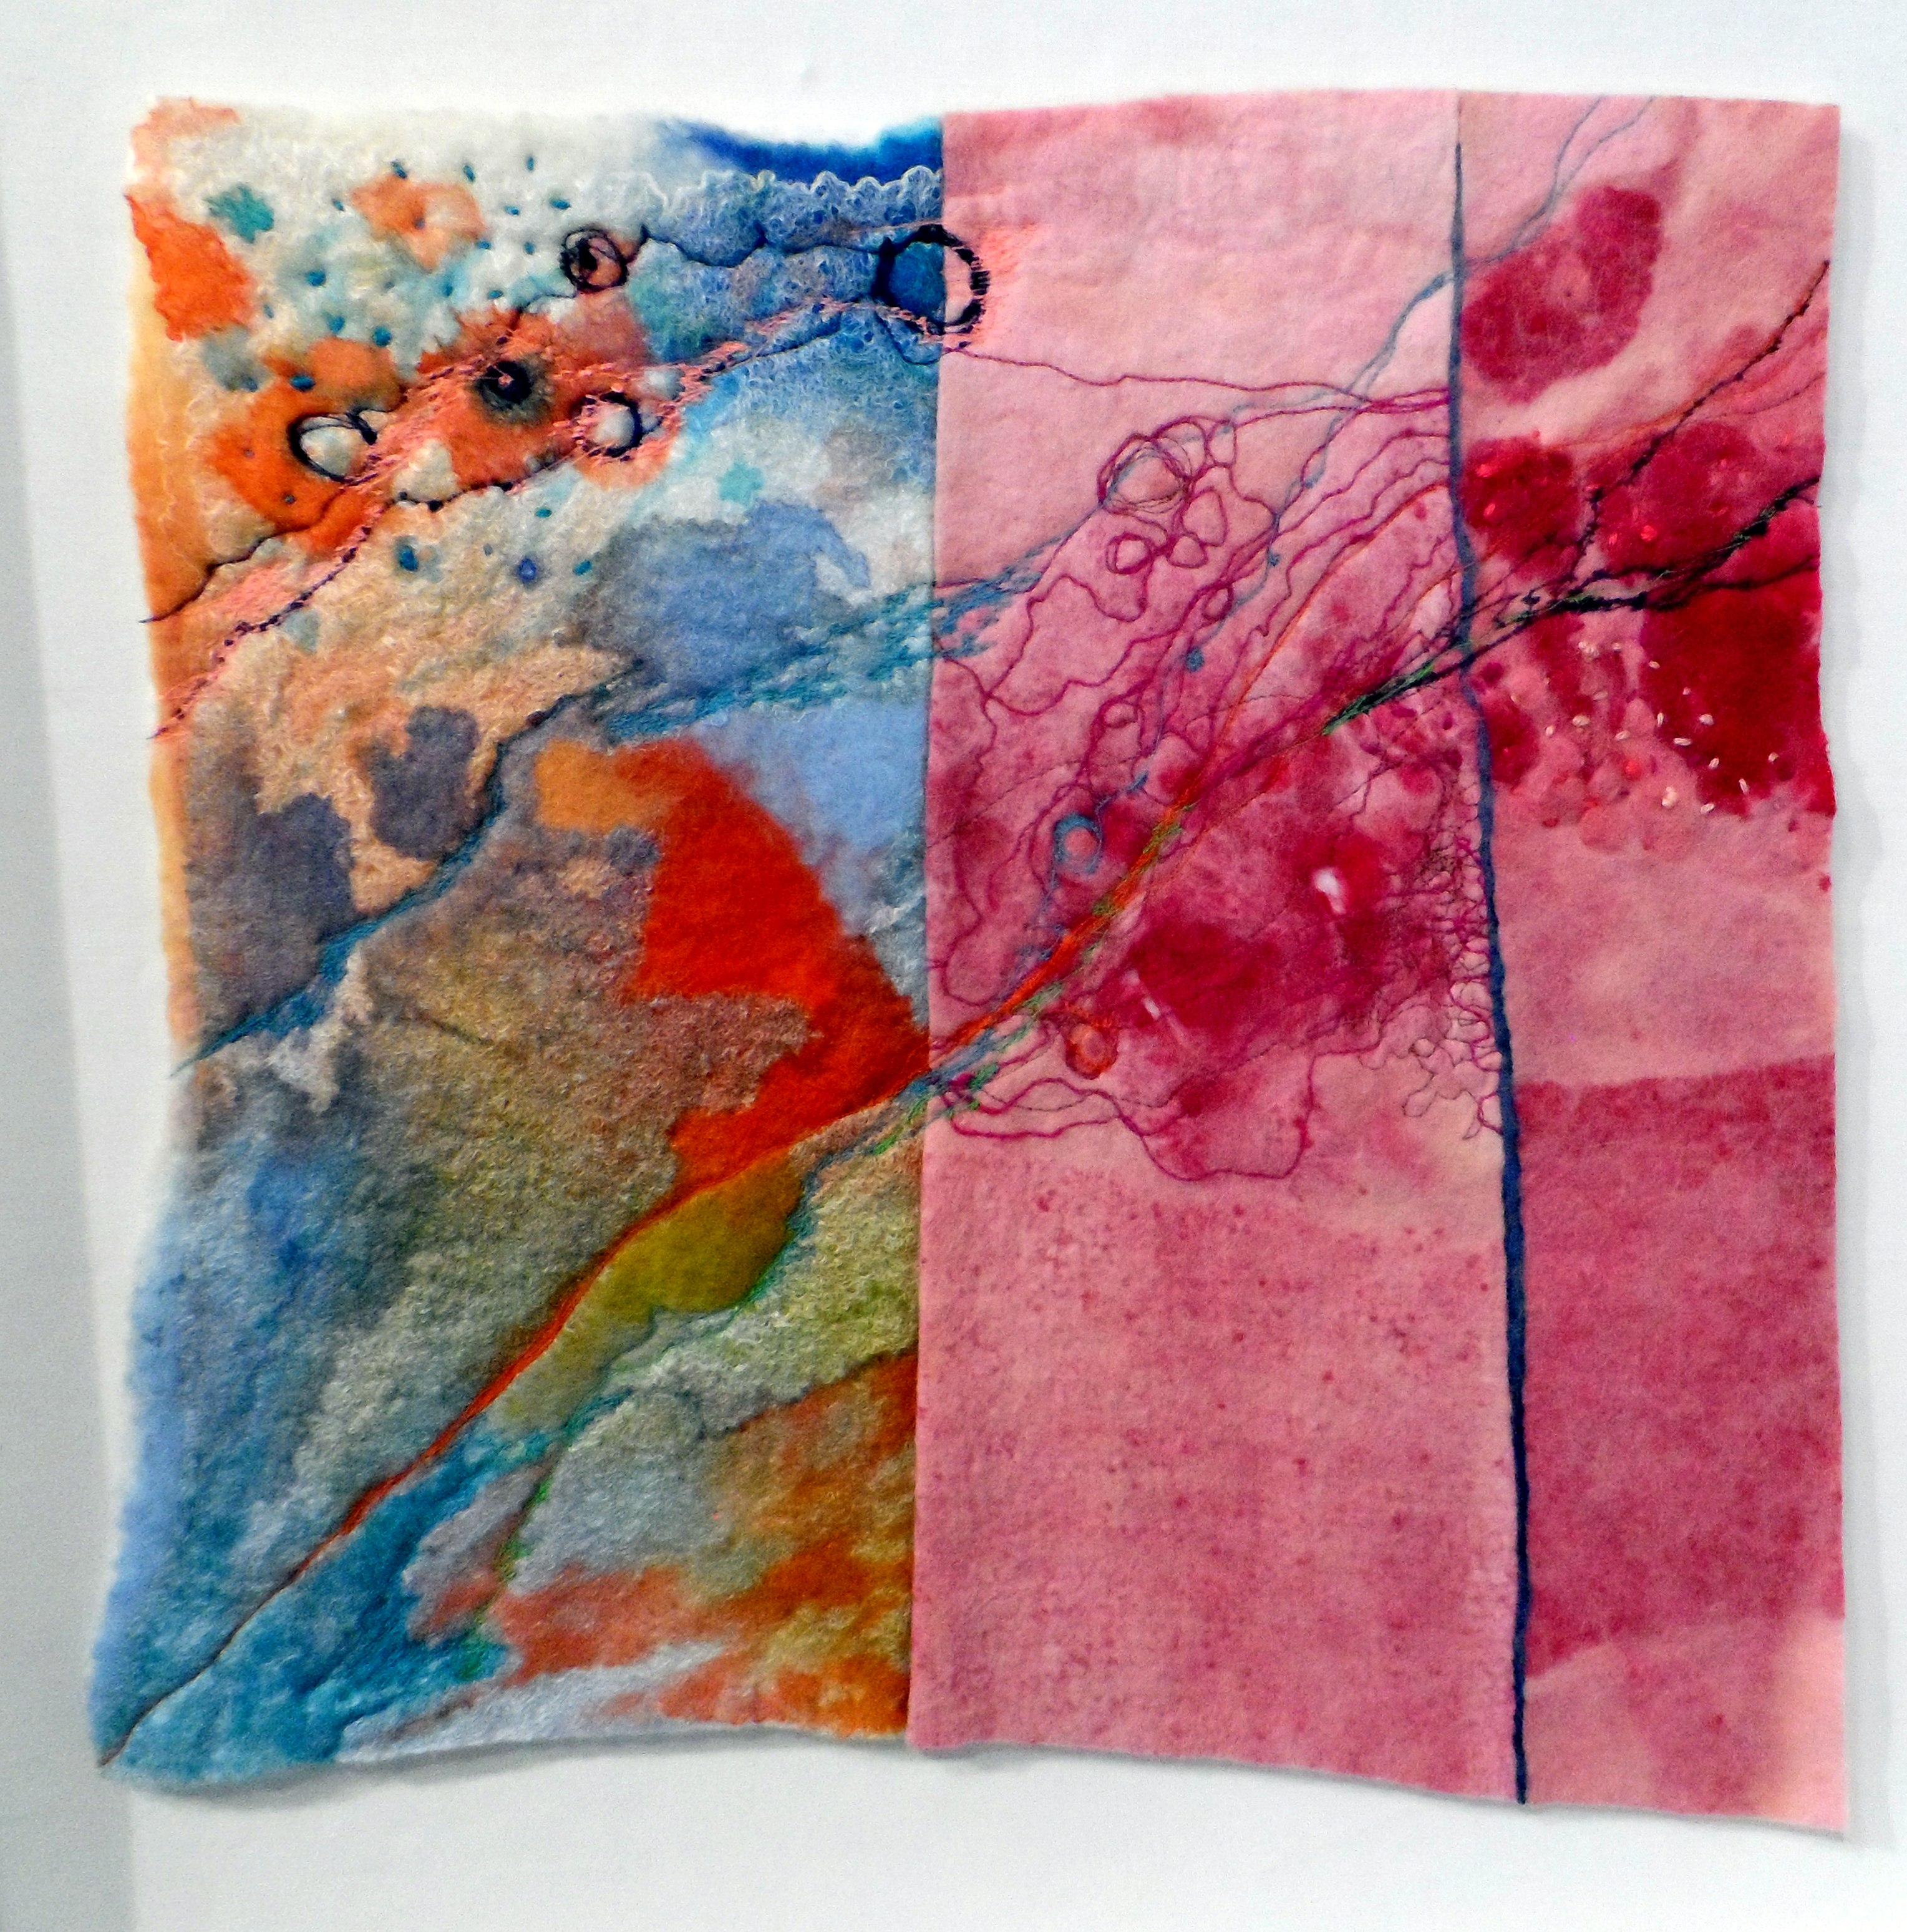 STRATUM by Catherine Carmyllie, felted wool, silks, dyed, stitched & painted, Re-View Textile Group, Frodsham 2019